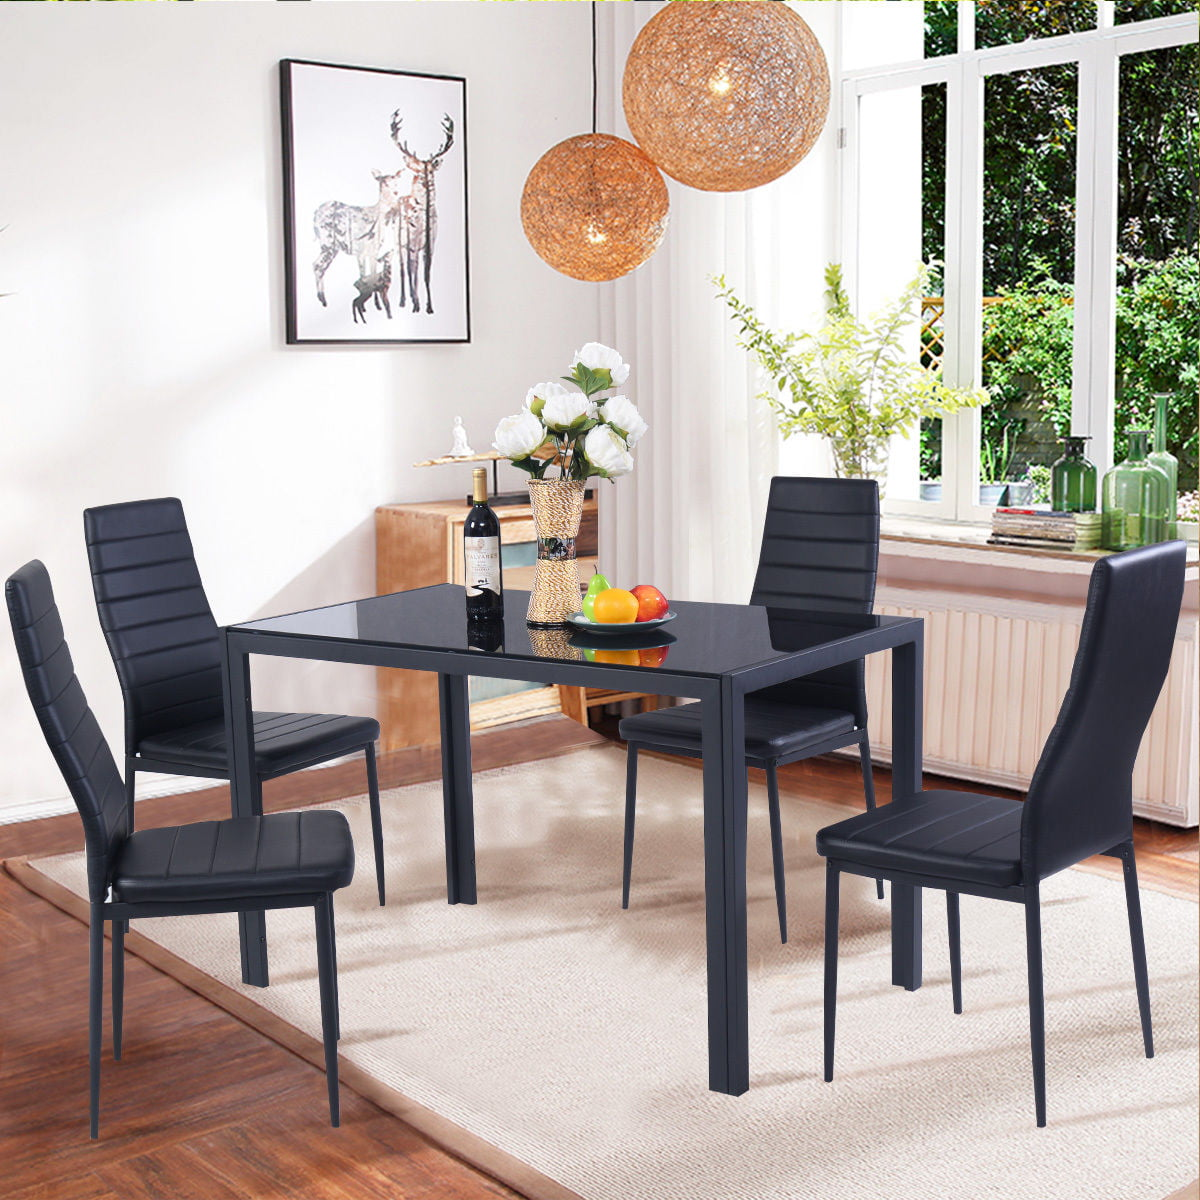 Costway 5 Piece Kitchen Dining Set Glass Metal Table and 4 Chairs Breakfast  Furniture   Walmart com. Costway 5 Piece Kitchen Dining Set Glass Metal Table and 4 Chairs